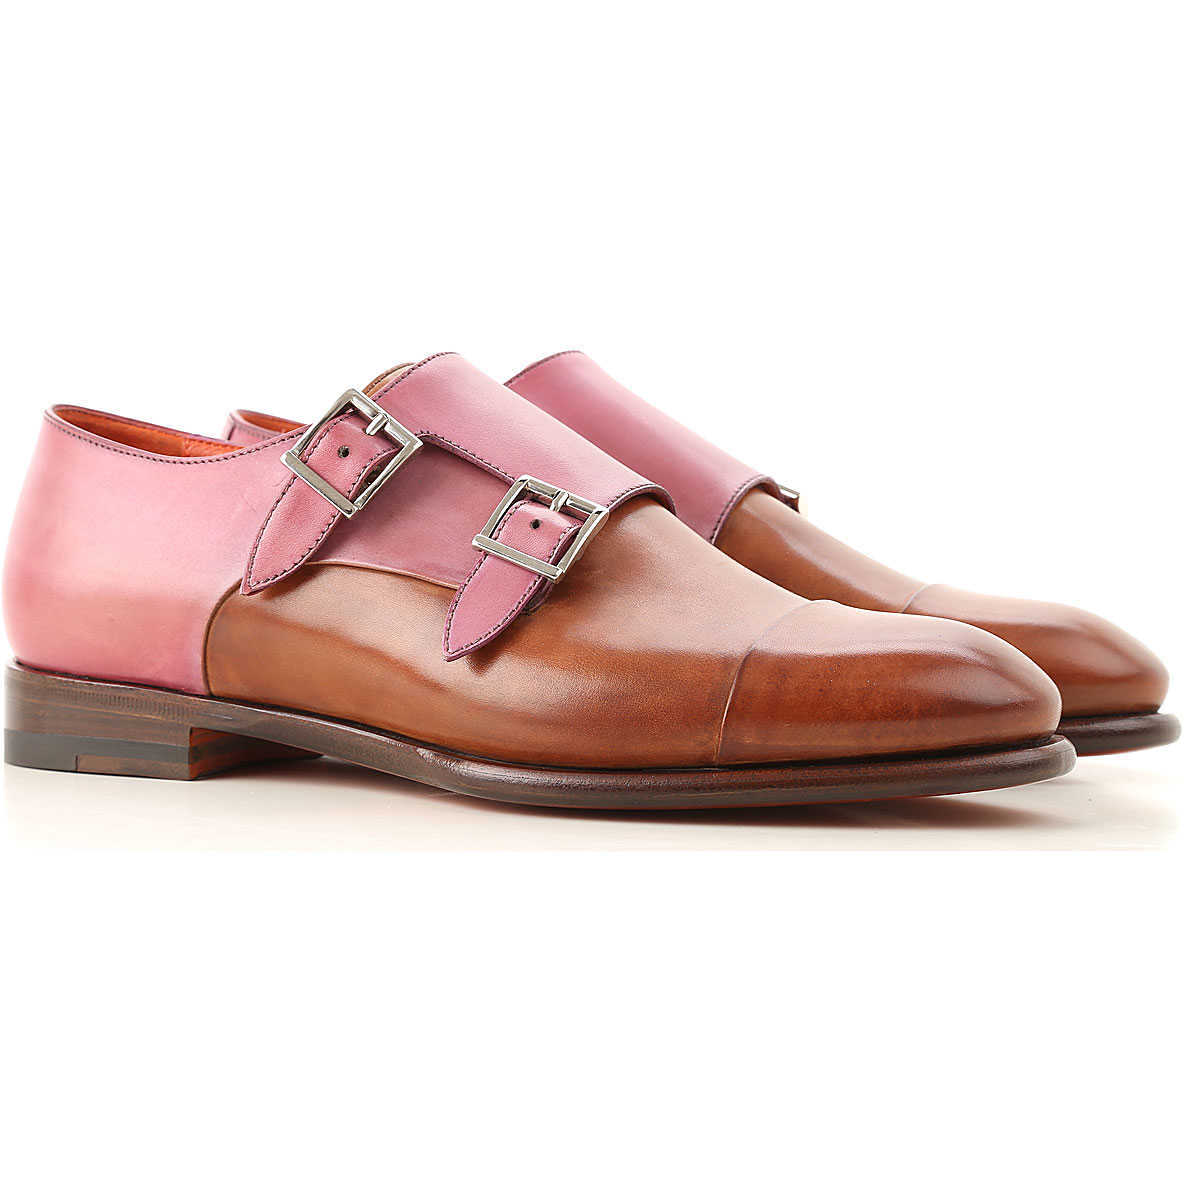 Santoni Oxford Lace up Shoes for Women in Outlet Copper Brown Canada - GOOFASH - Womens LEATHER SHOES